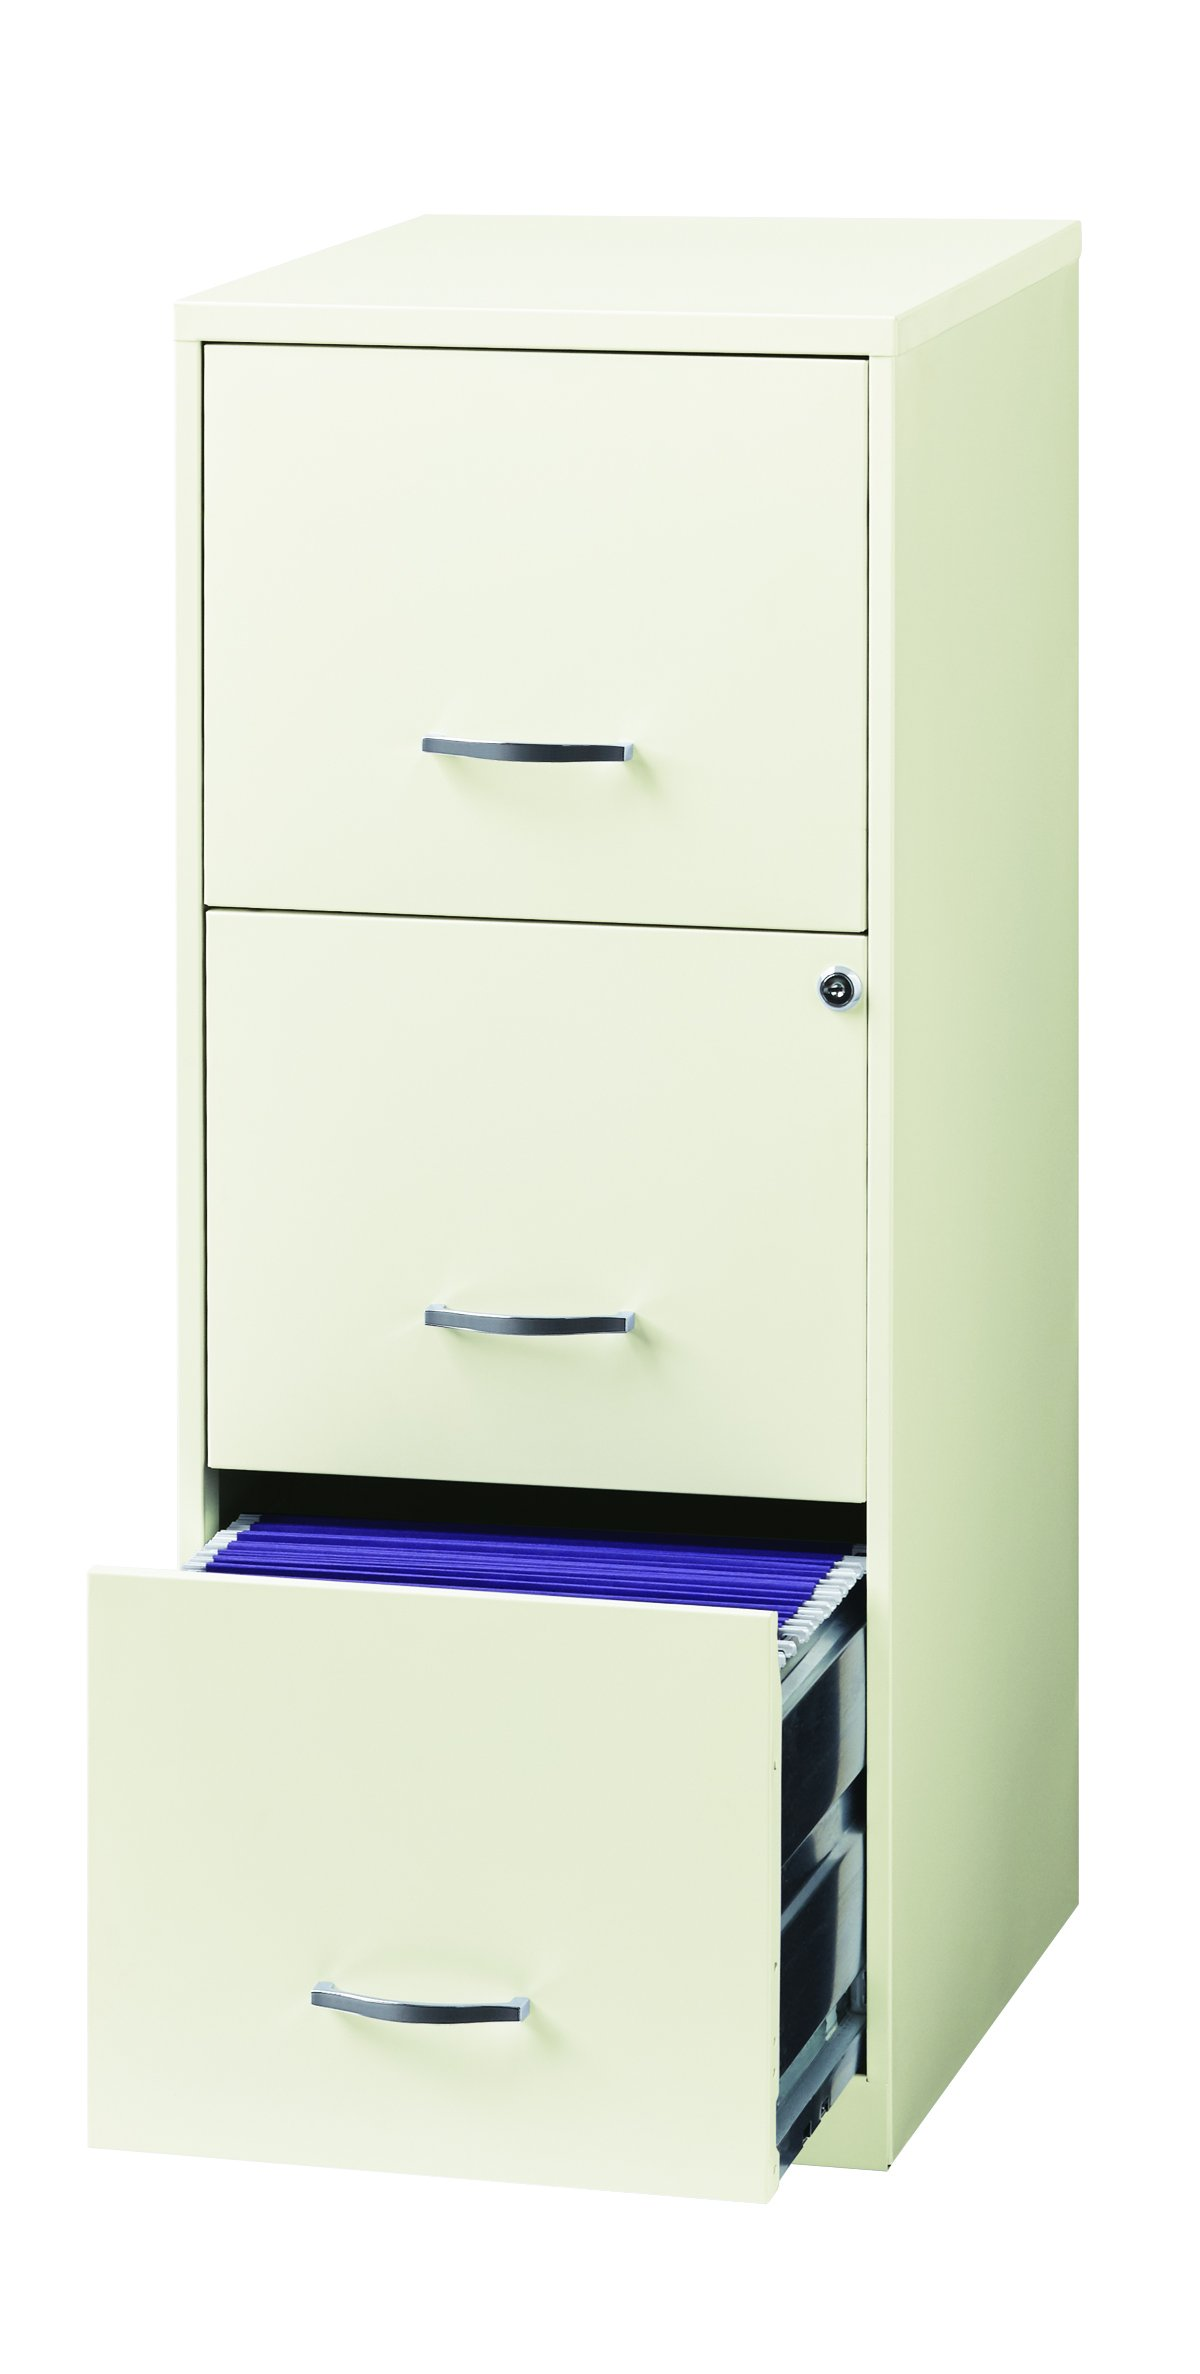 Space Solutions 3 Drawer Metal File Cabinet with lock, 18'' Deep For Office Storage - White